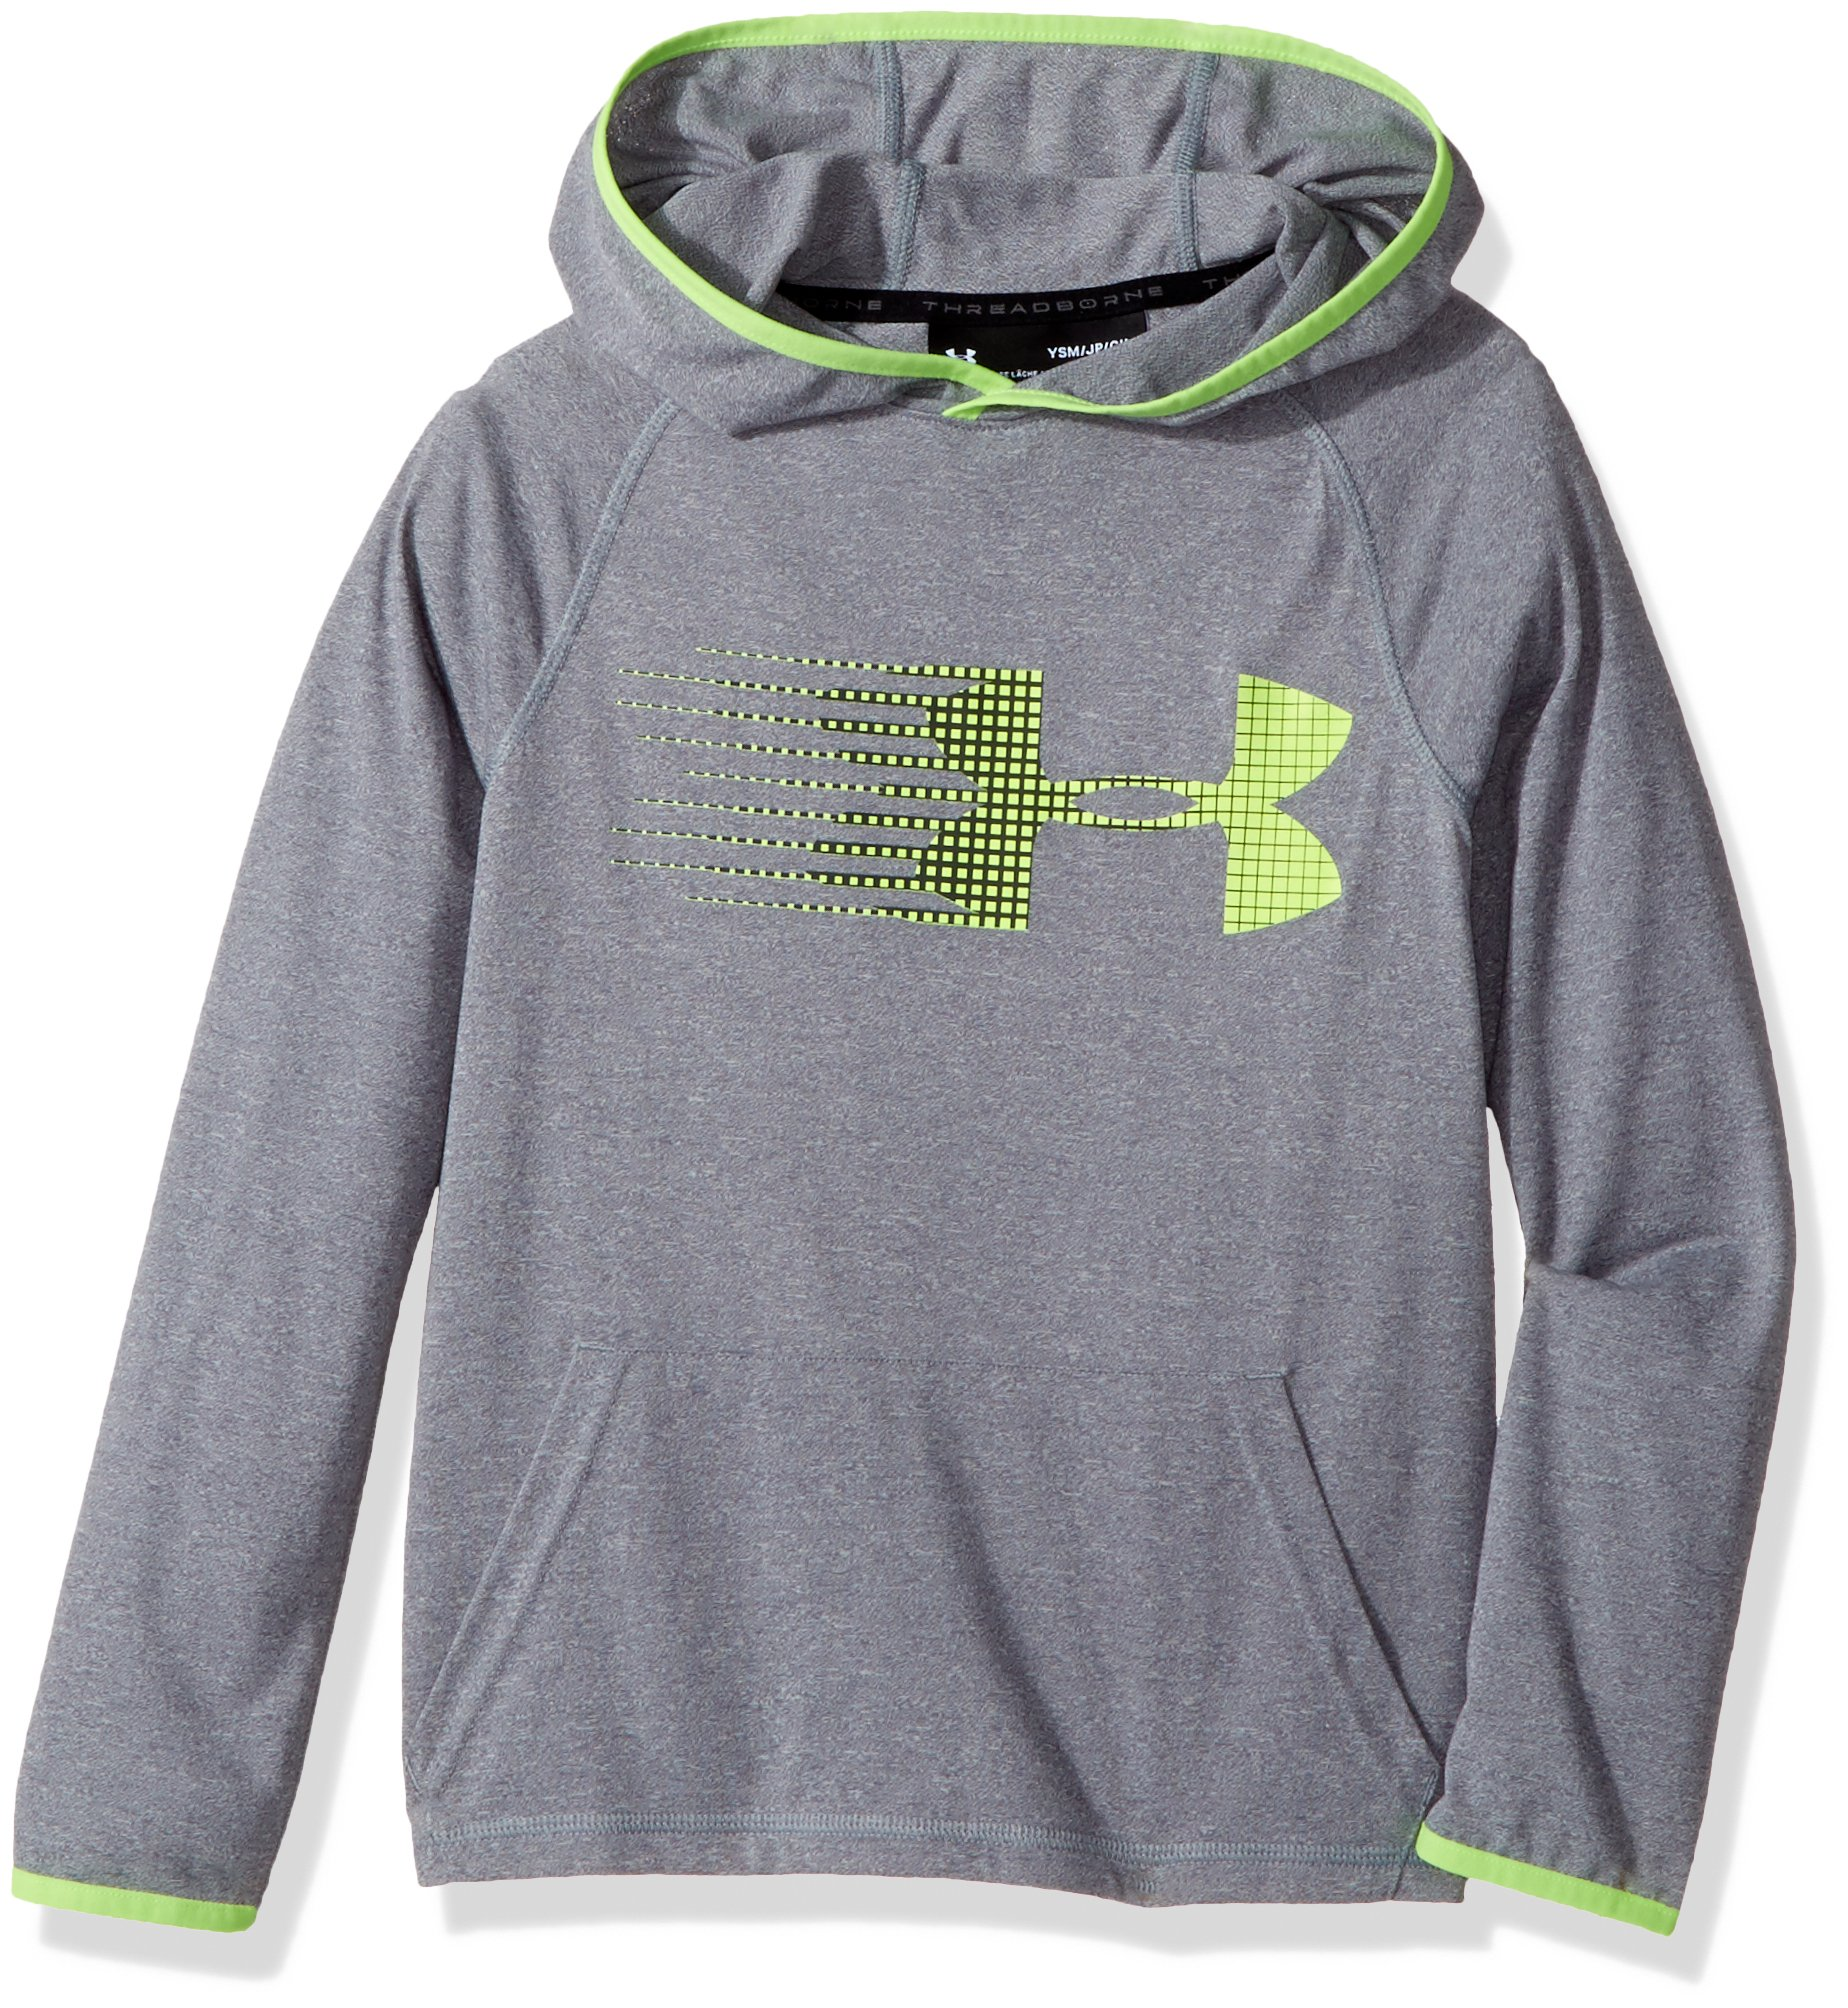 Under Armour Boys' Threadborne Hoodie,Graphite /Quirky Lime, Youth Small